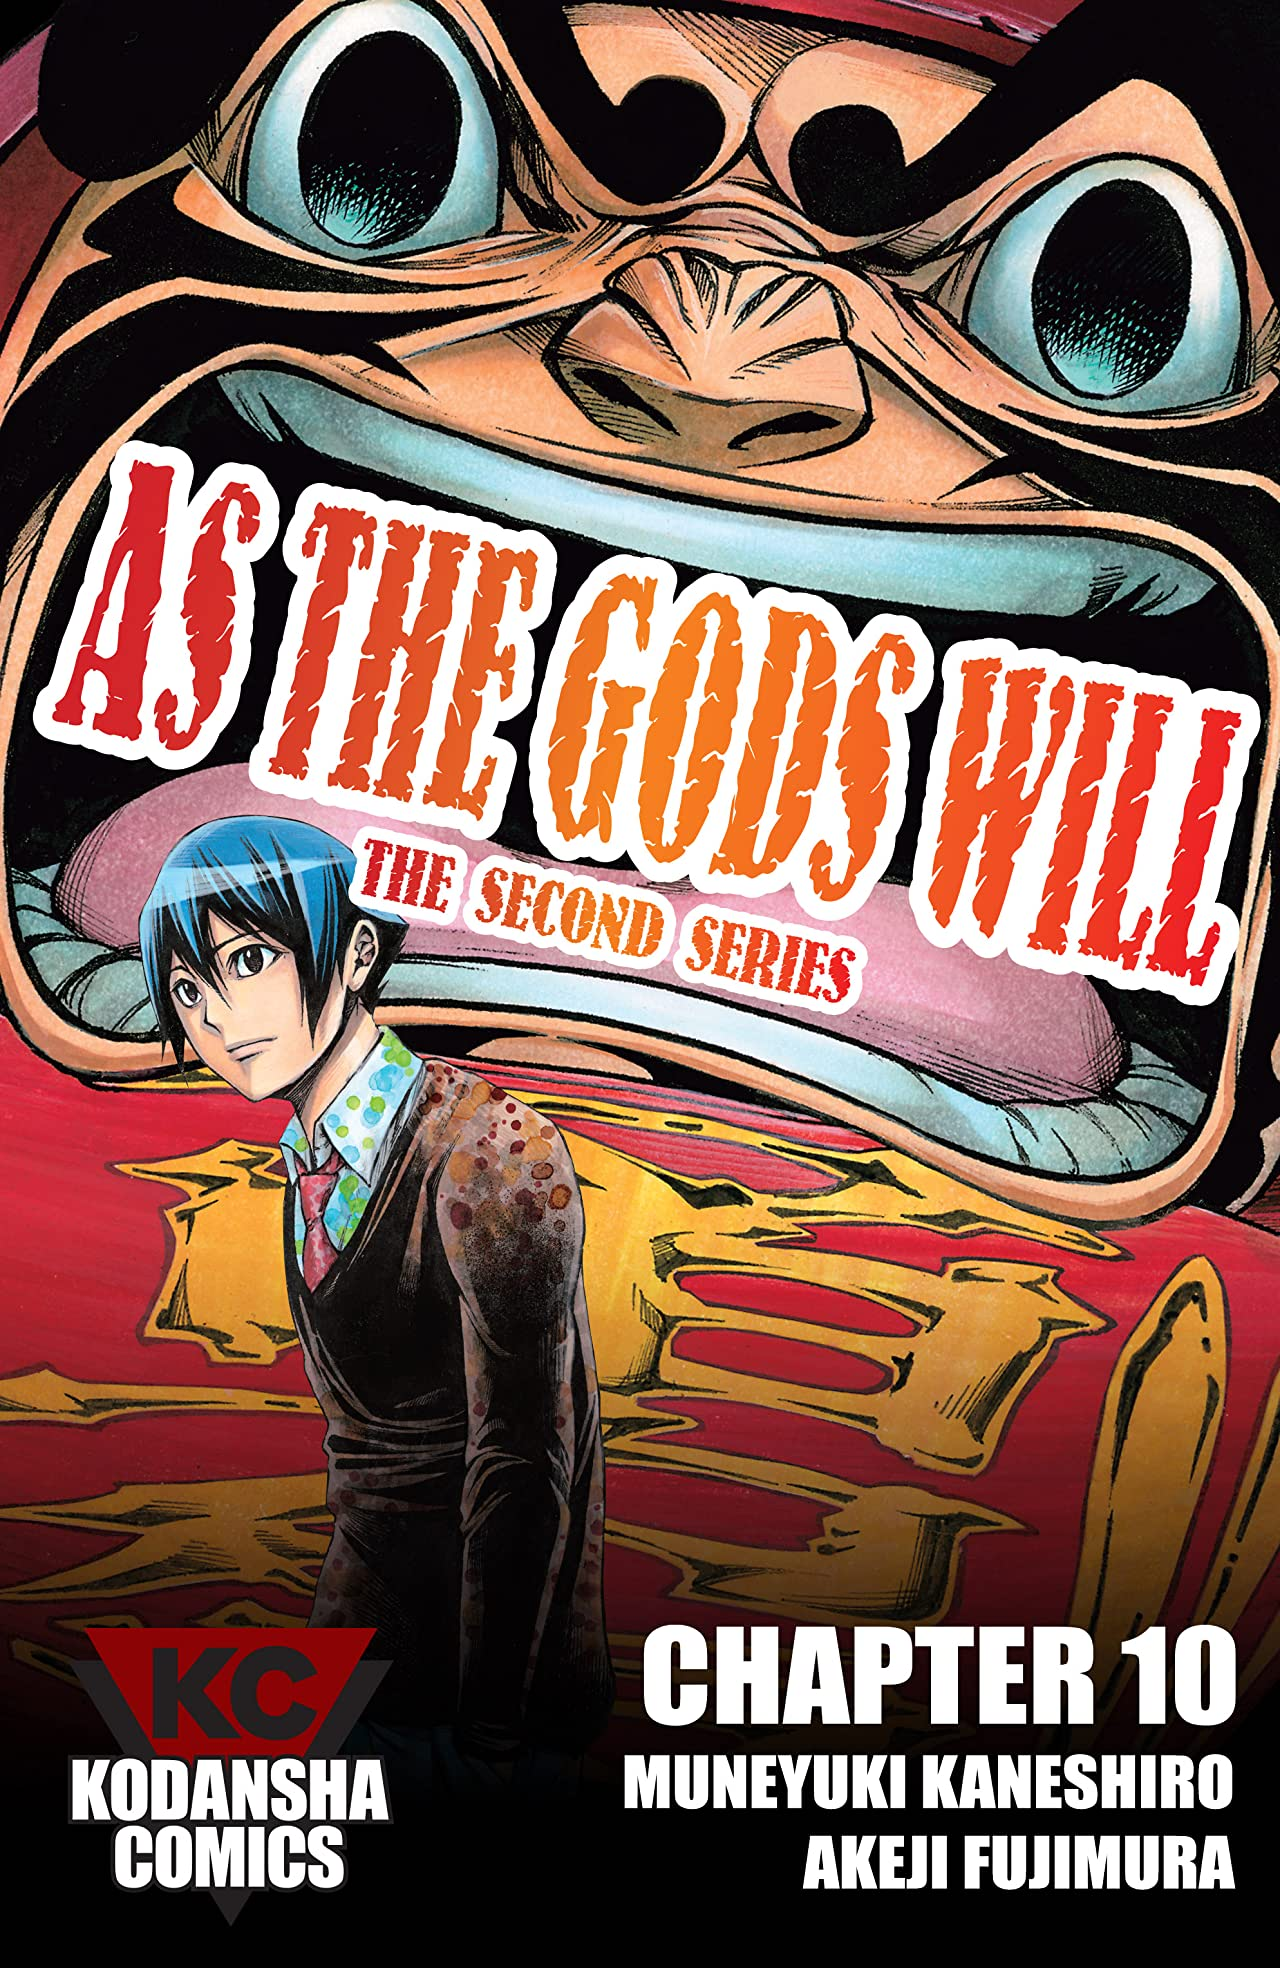 As The Gods Will: The Second Series #10